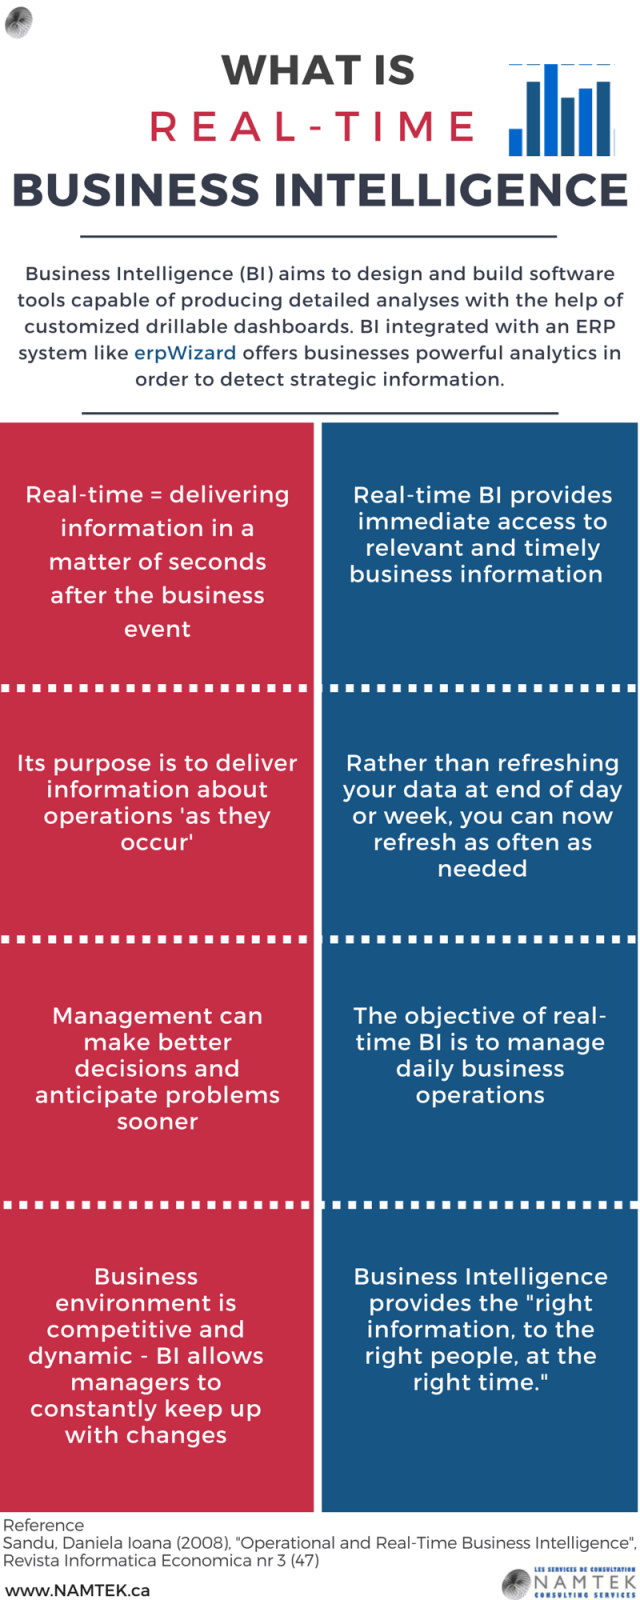 Real-Time Business Intelligence